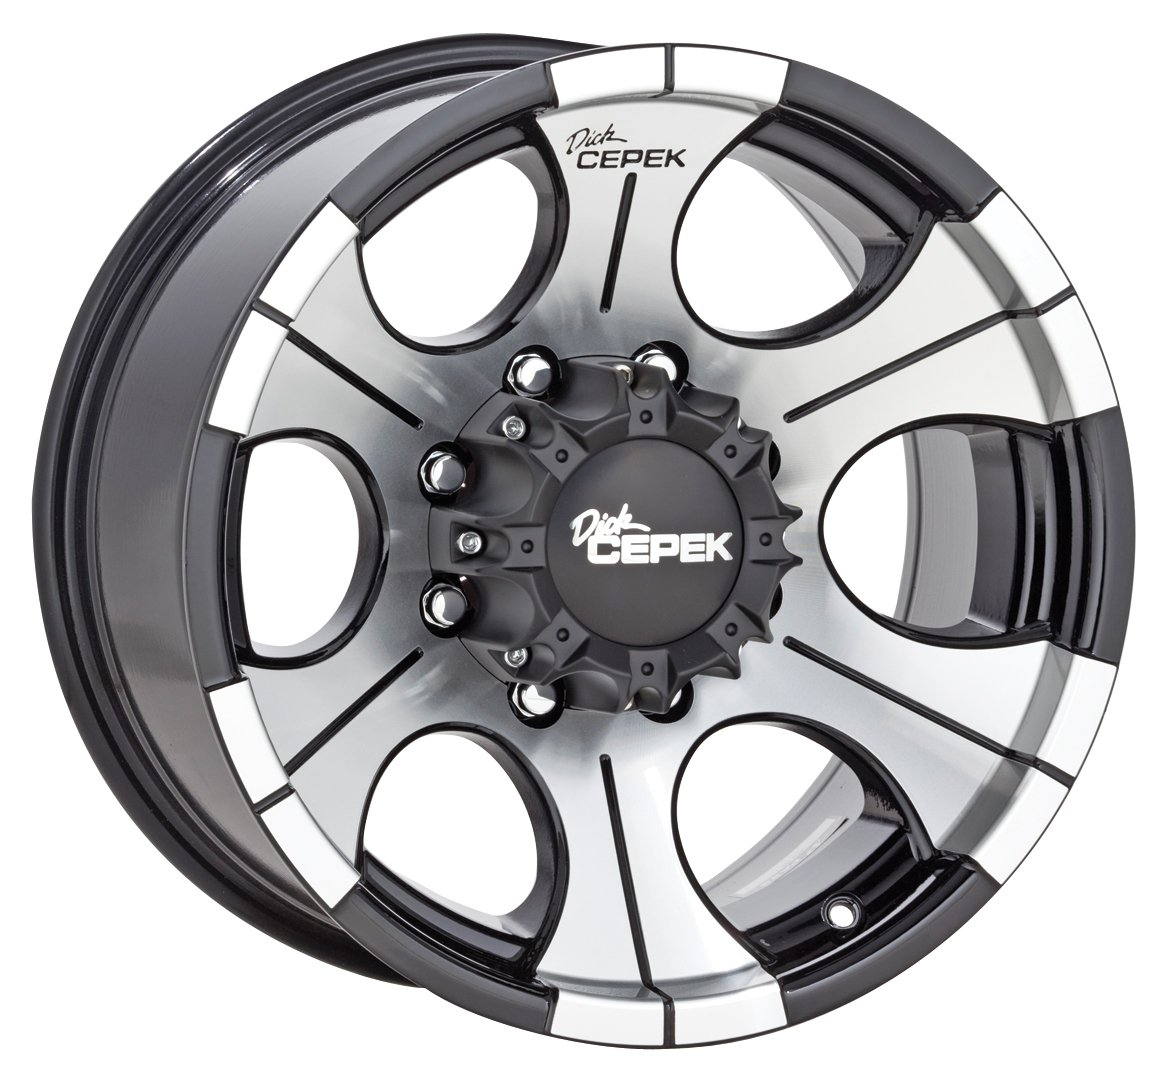 Dick Cepek DC-2 Gloss Black Wheel with Machined Finish, 20x9.5 inches (5 holes x 6.5 inches)